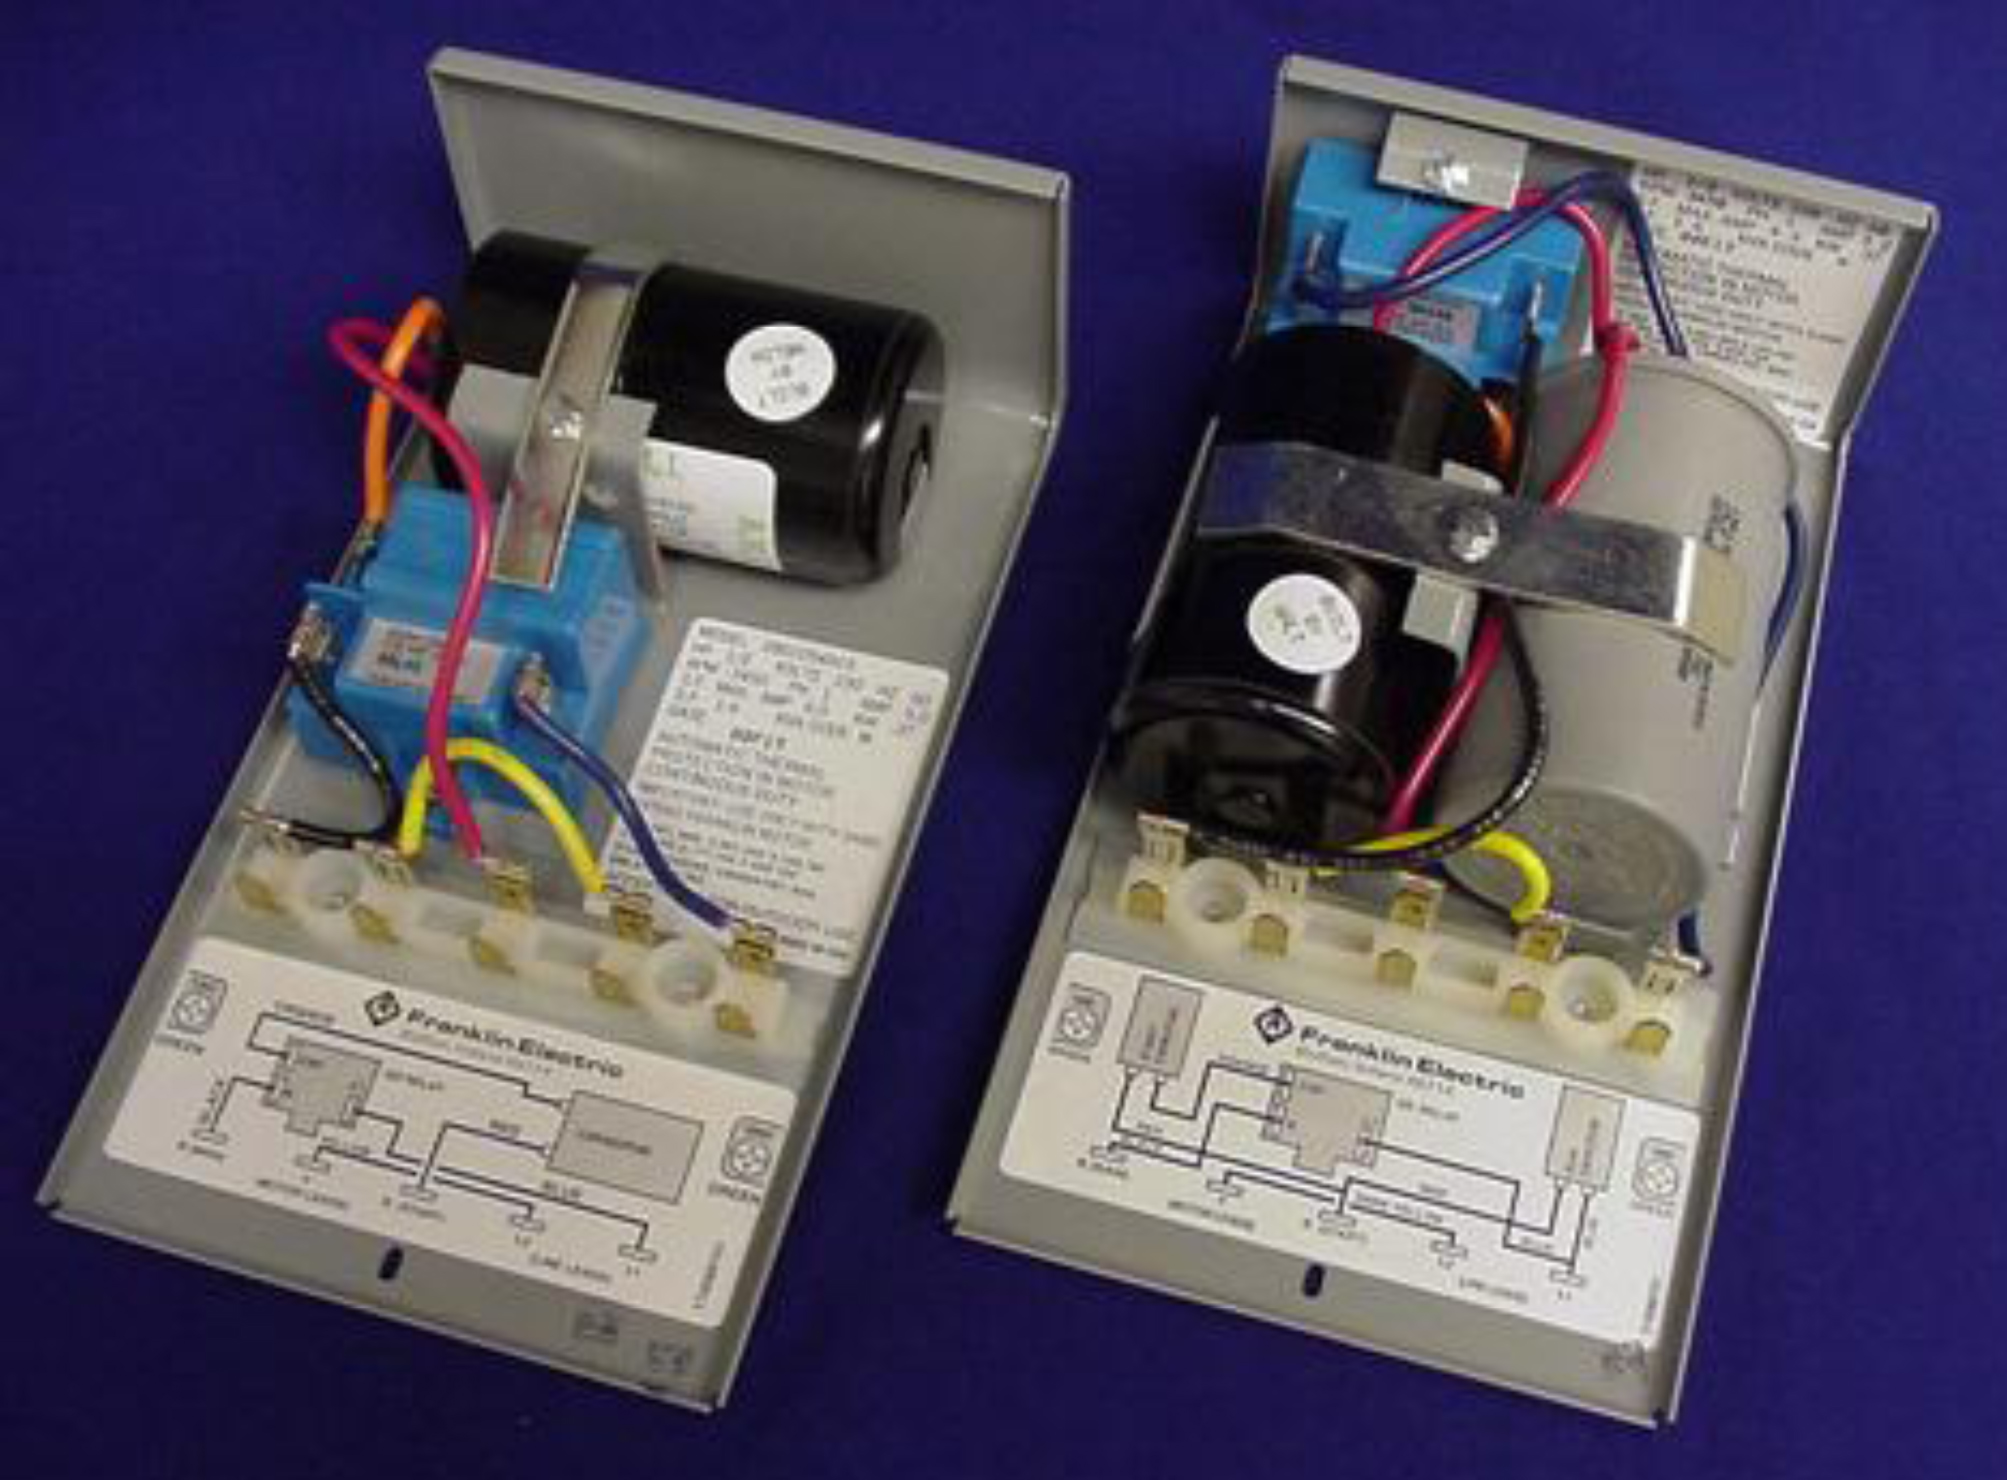 Franklin Electric Well Pump Control Box Wiring Diagram - daily ... on